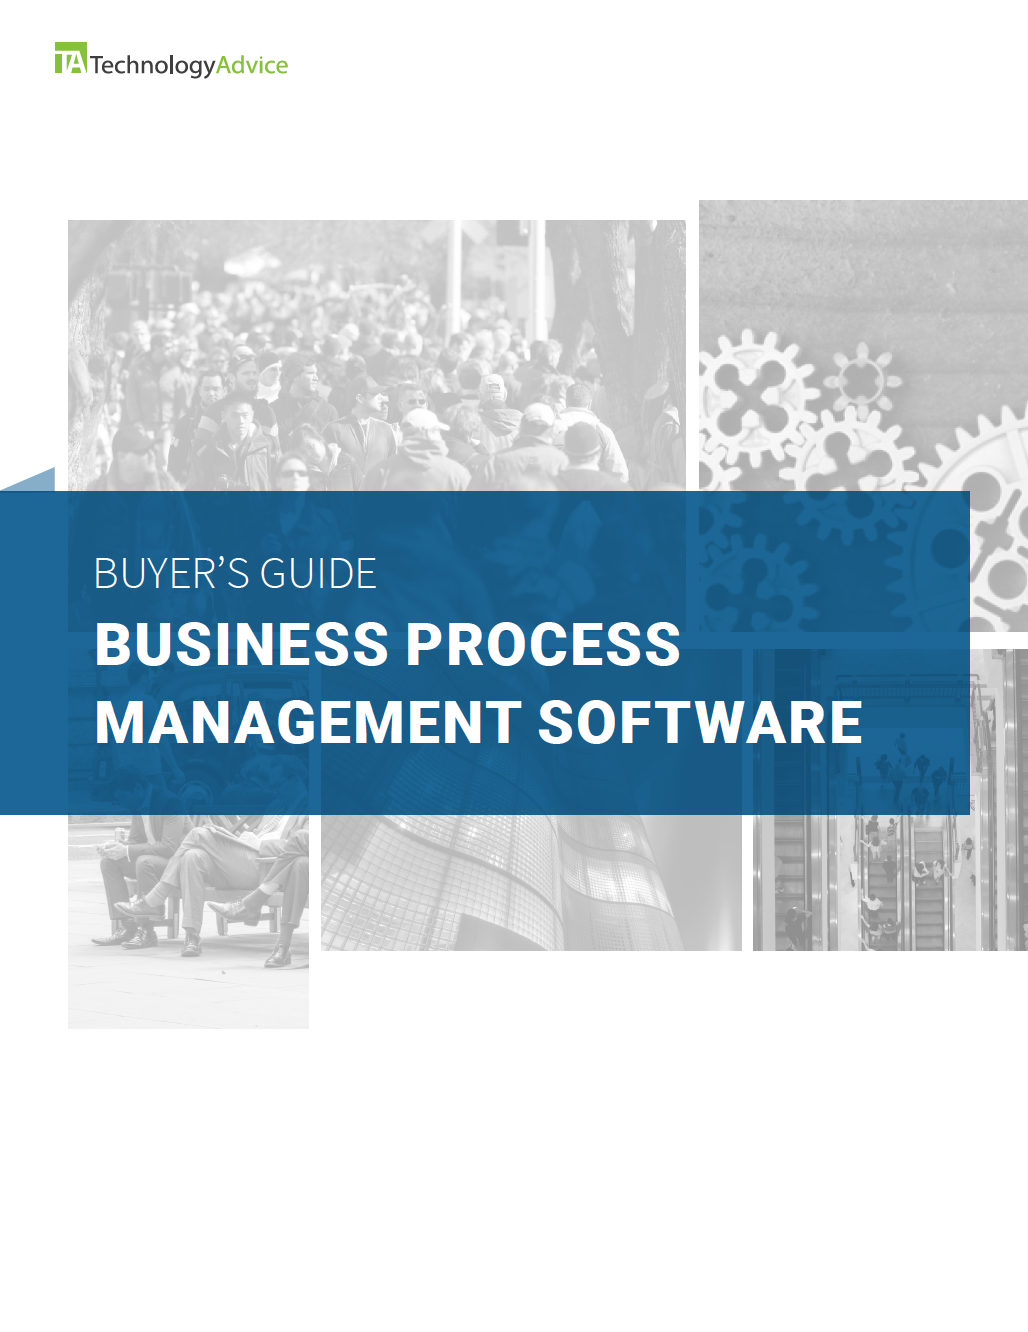 Business Process Management Software Buyer's Guide